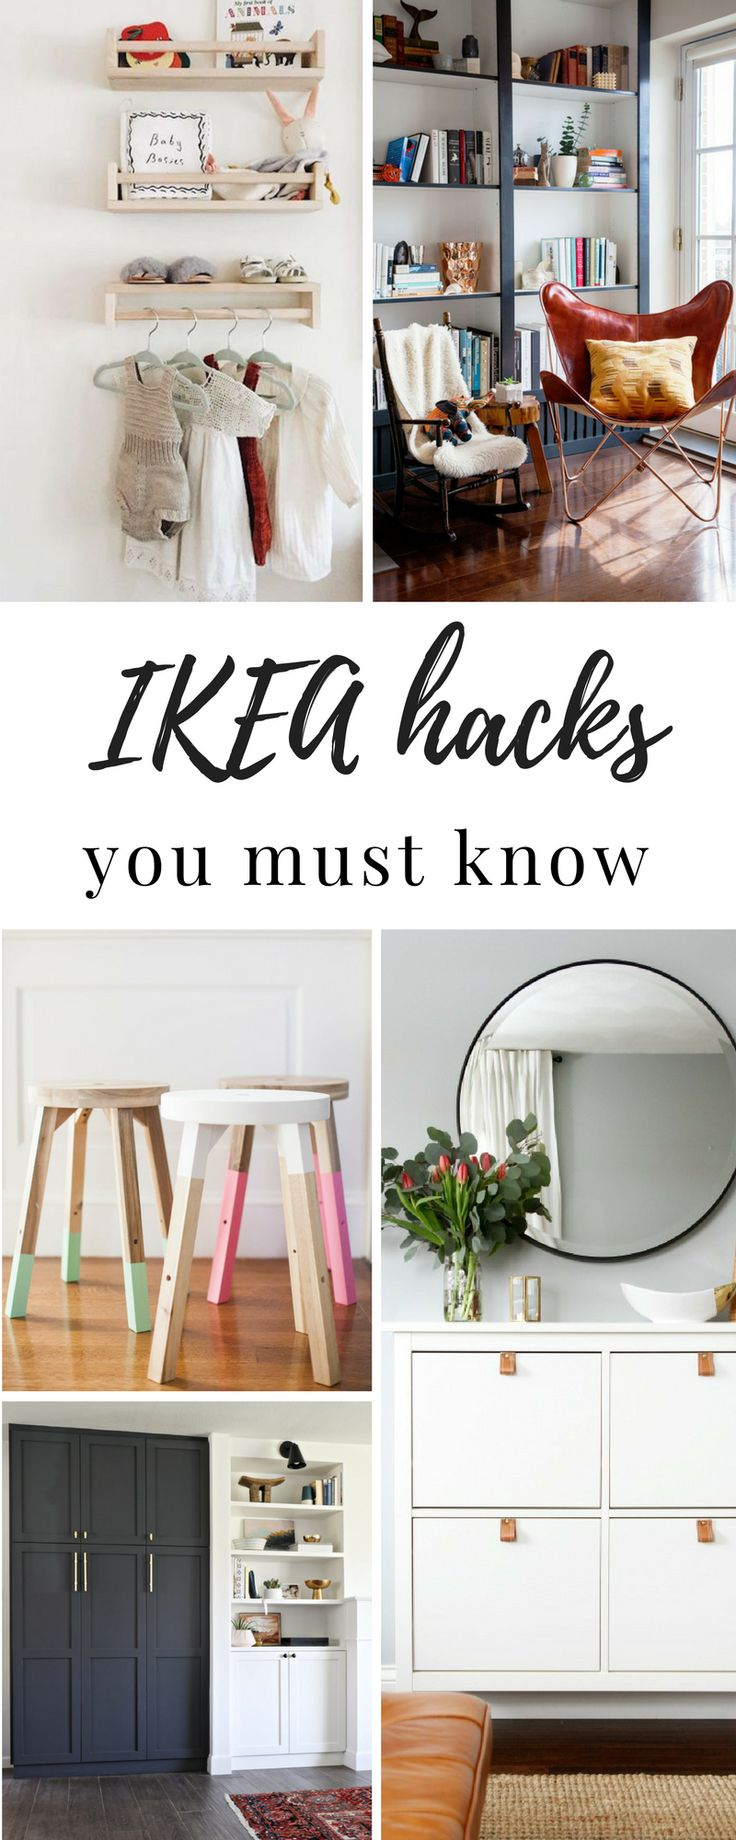 7 Amazing IKEA Hacks You Must Know